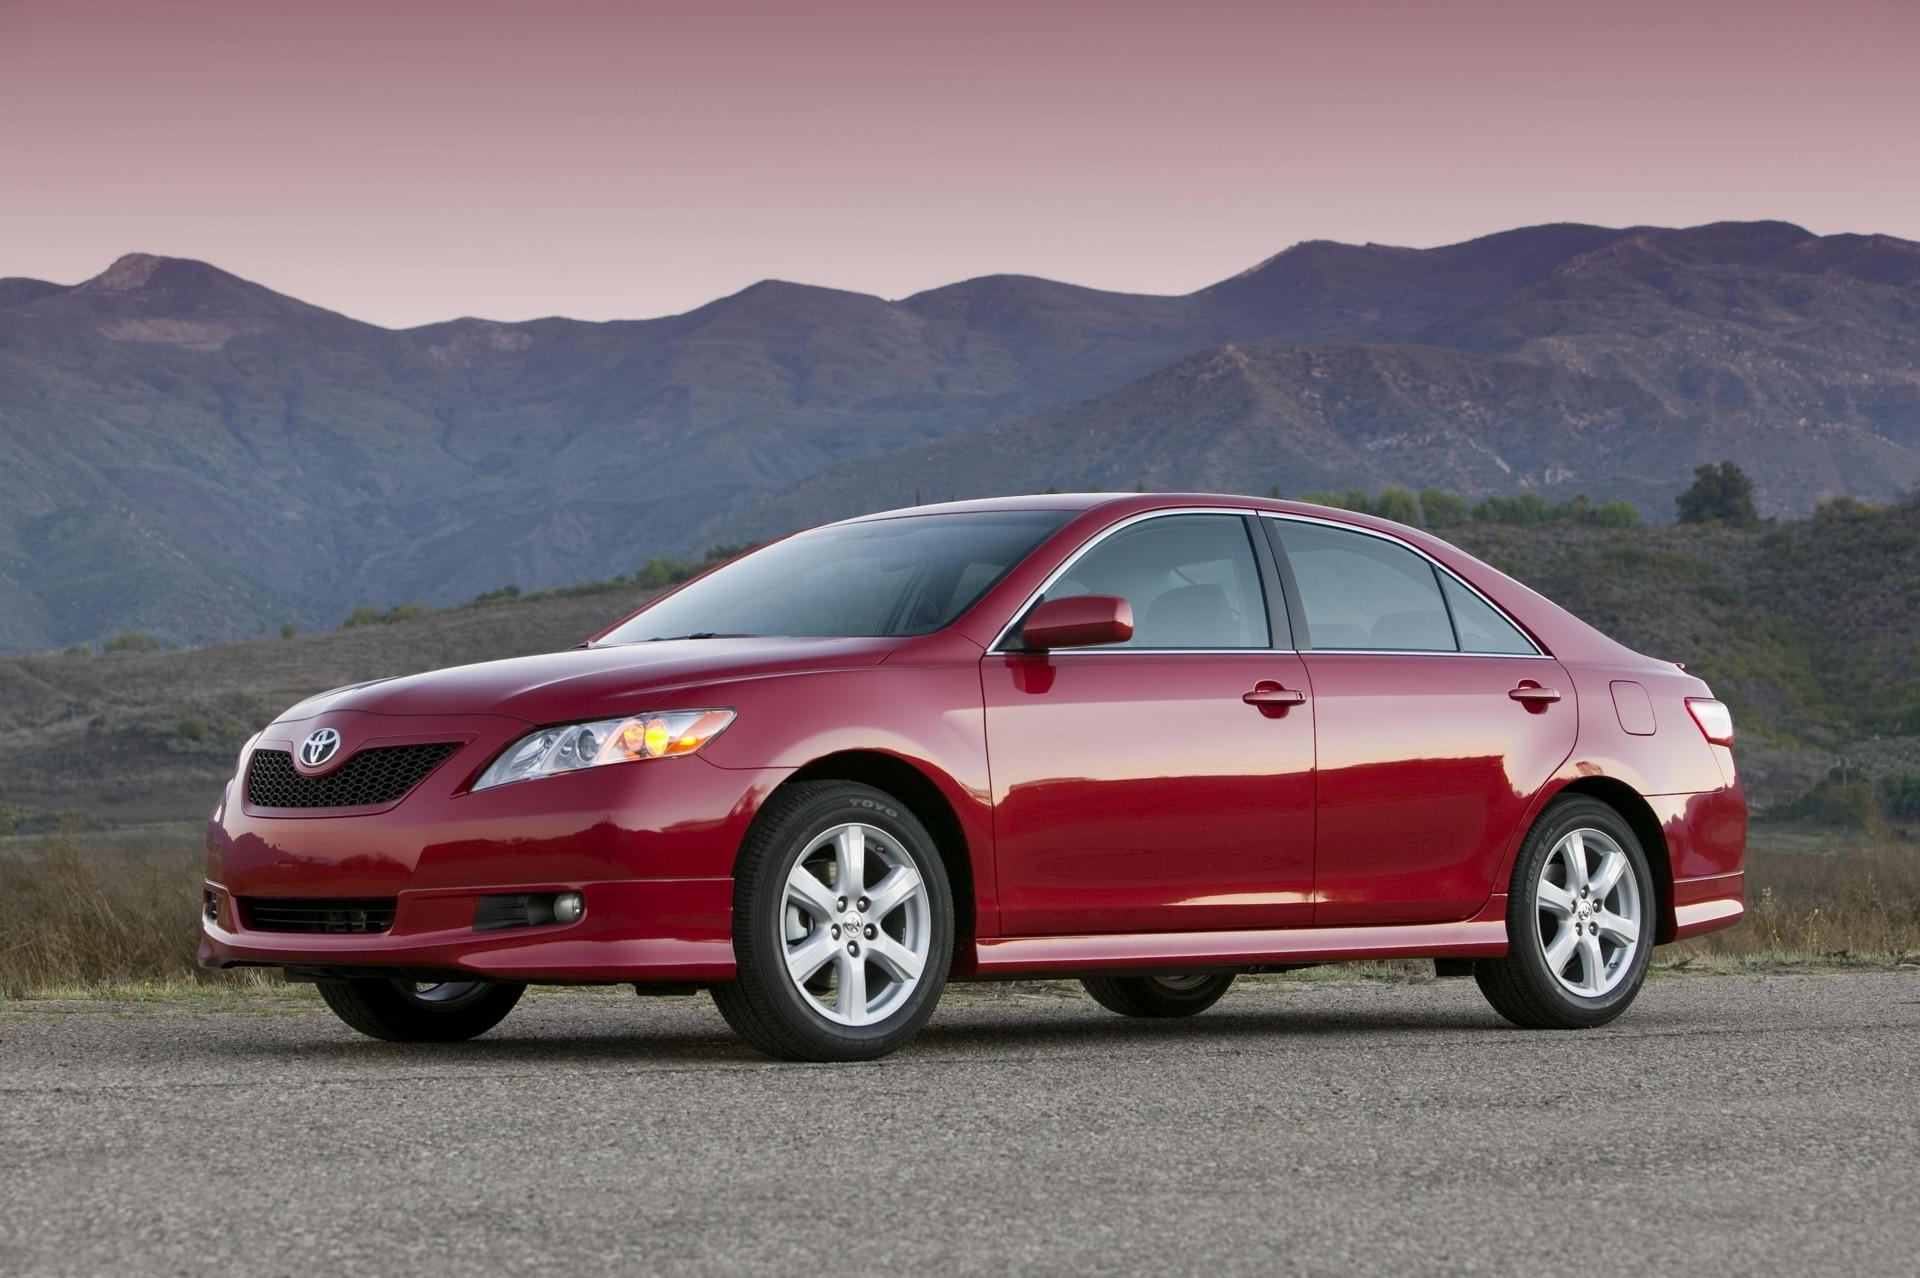 2009 toyota camry technical specifications and data. engine